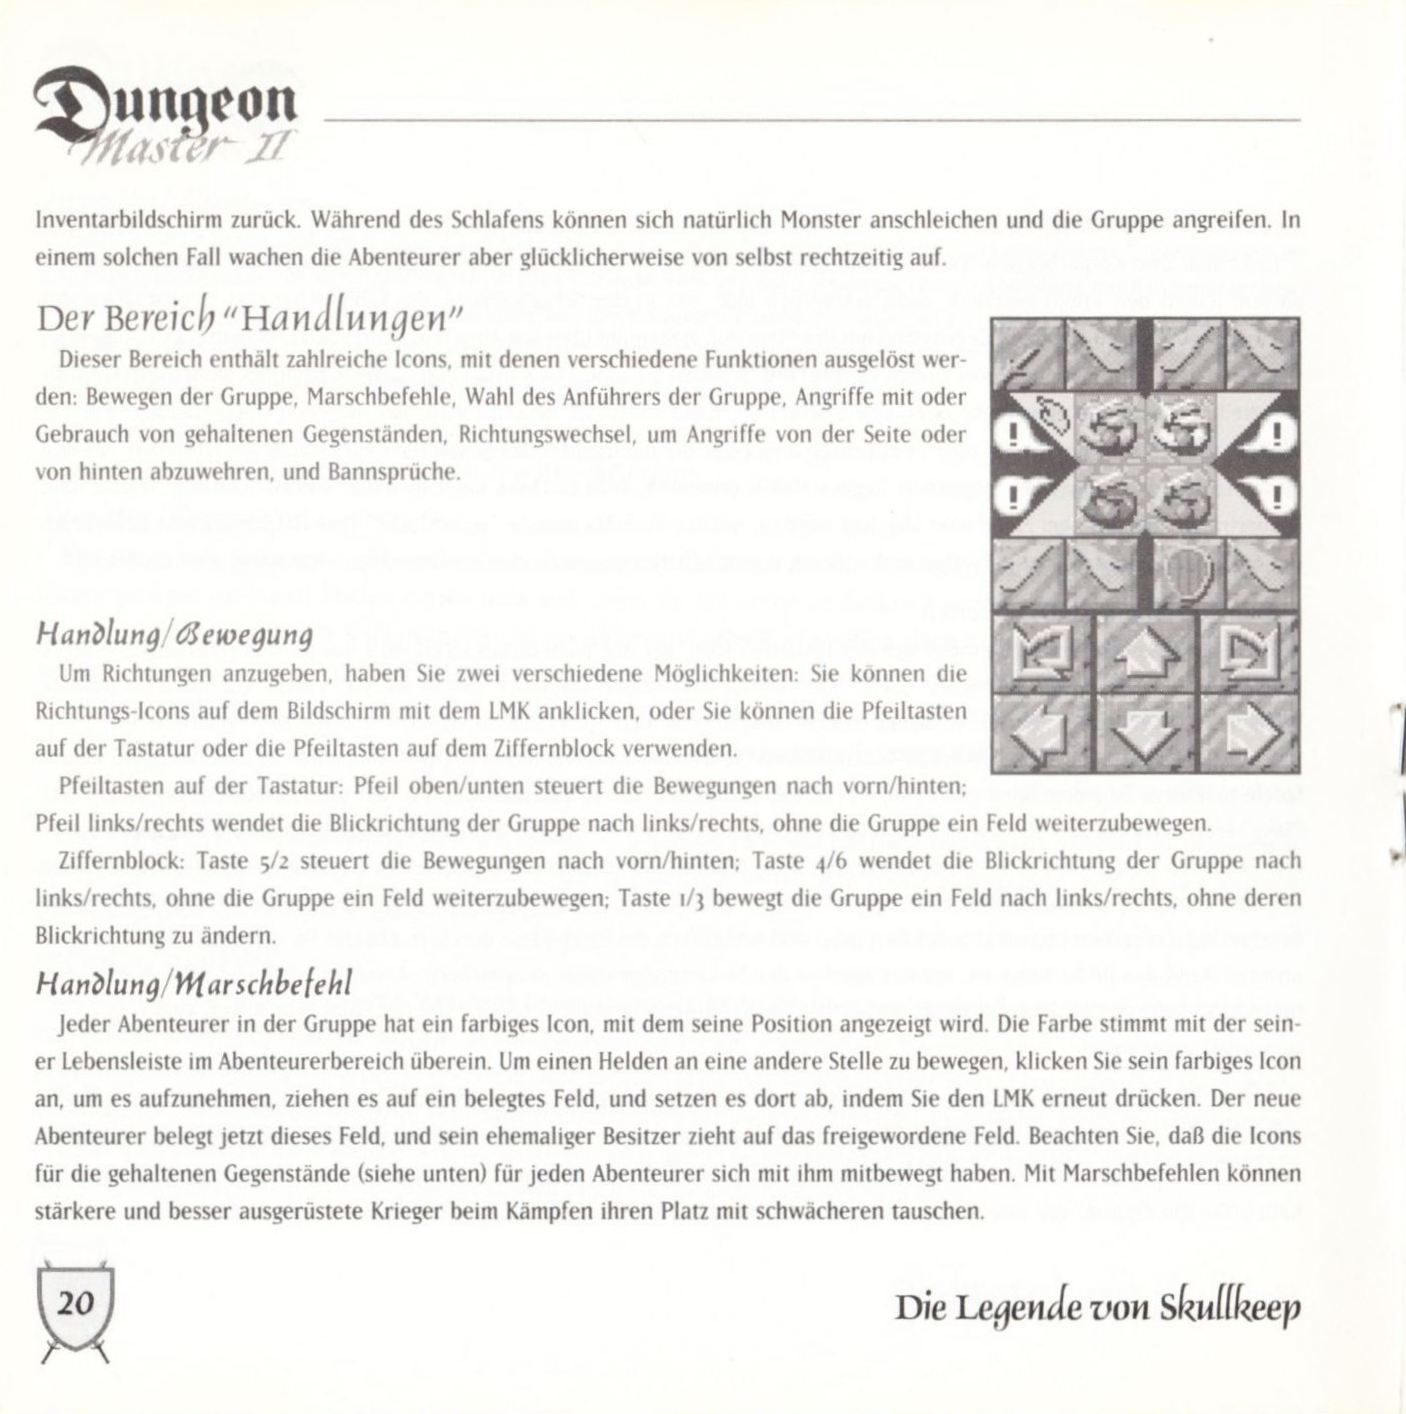 Game - Dungeon Master II - DE - PC - Blackmarket With Booklet - Booklet - Page 022 - Scan